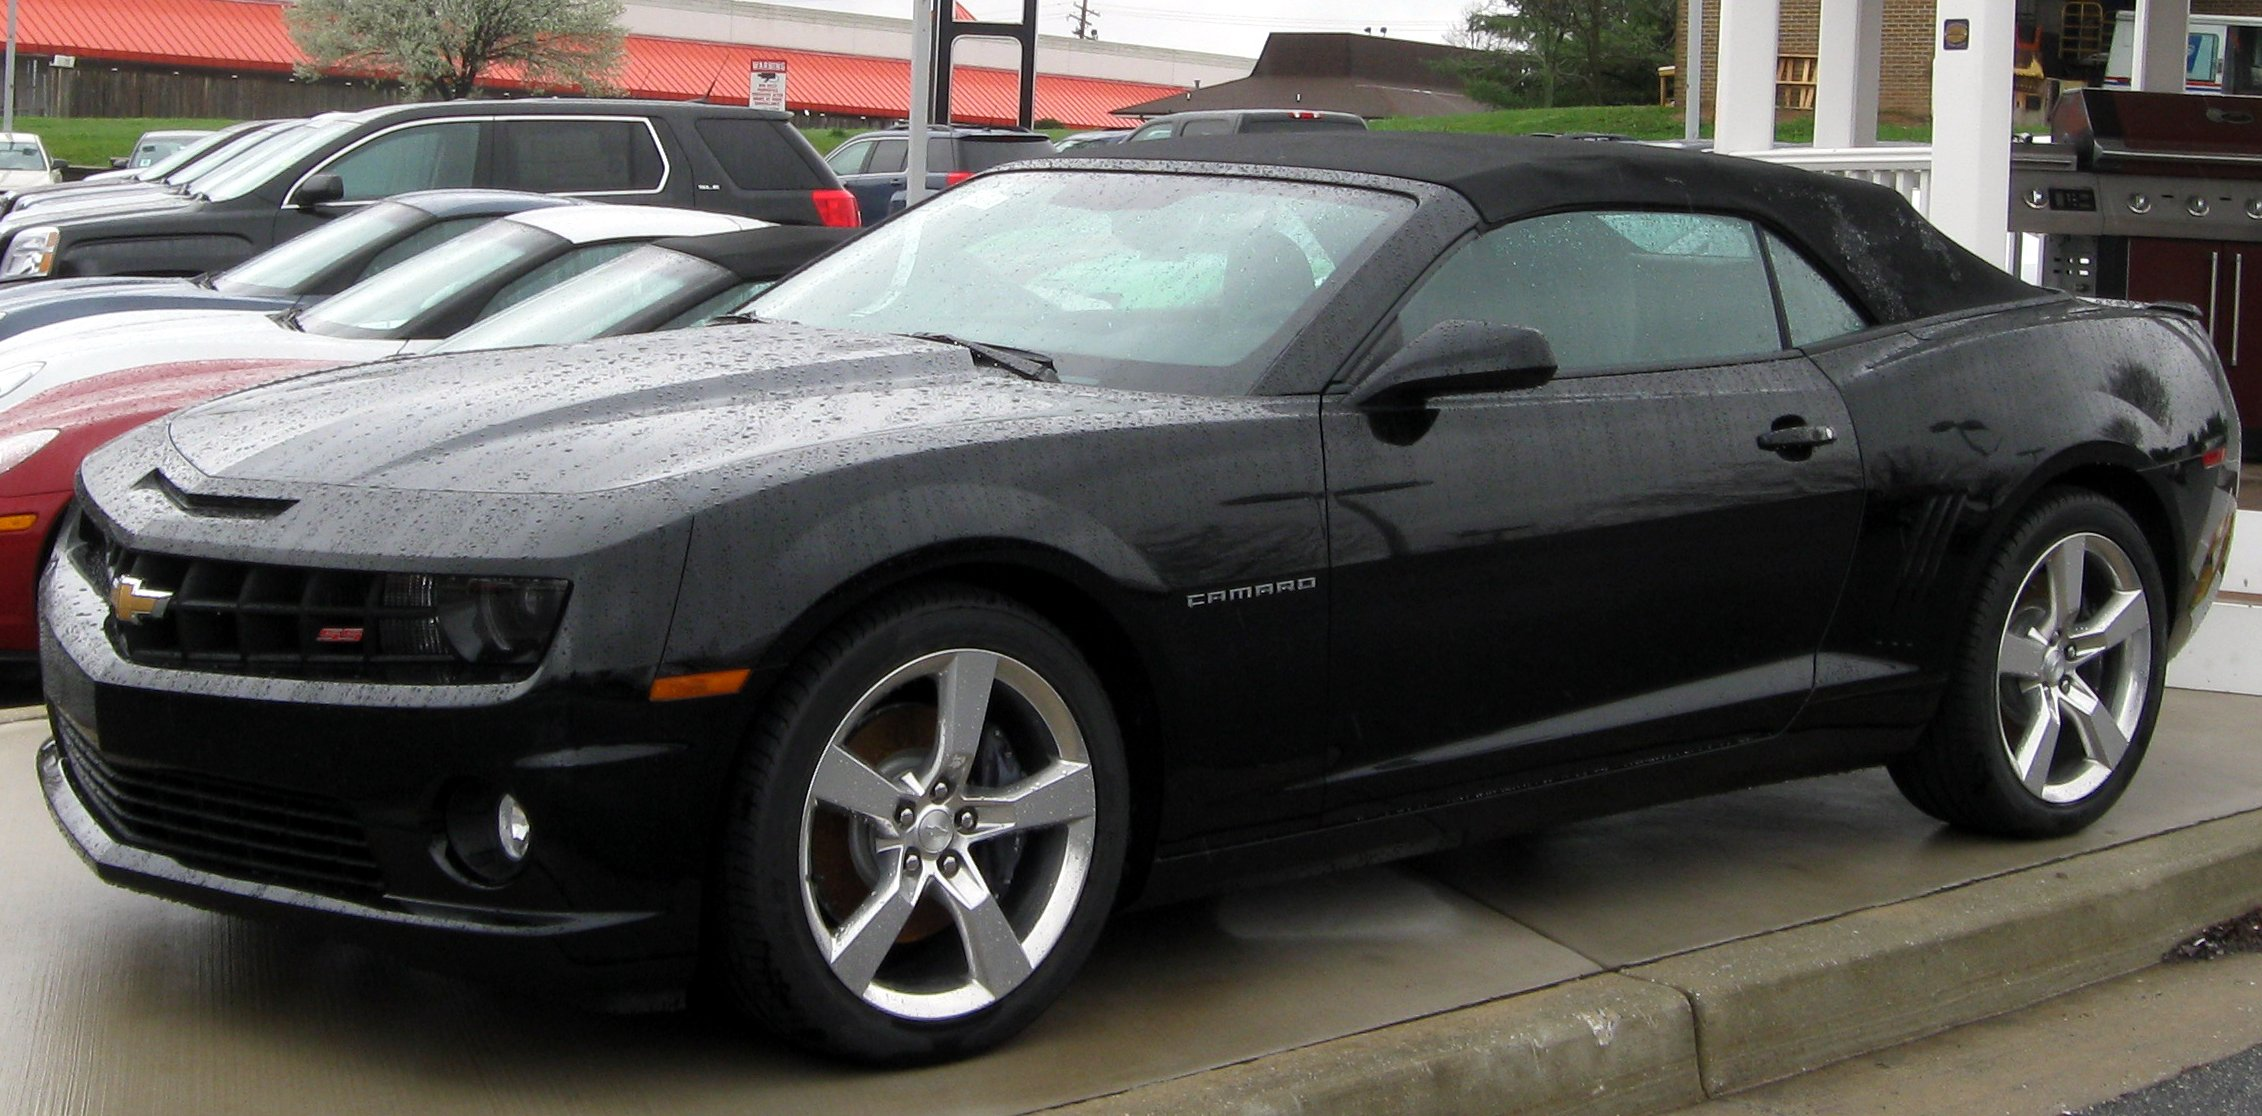 2009 Chevrolet Camaro convertible – pictures information and specs